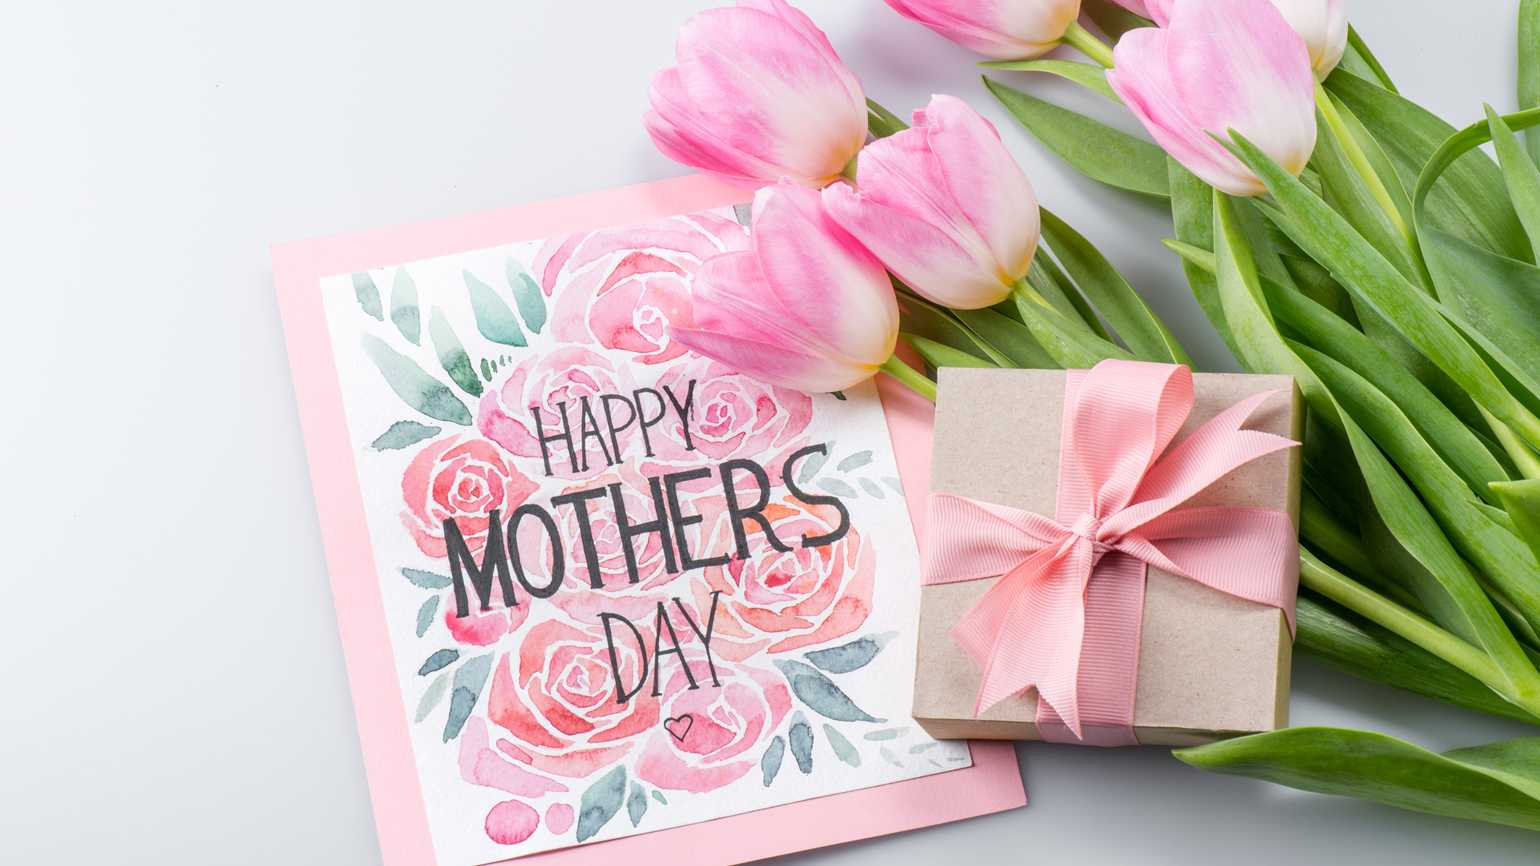 Beautiful pink tulips and a happy mother's day postcard and gift